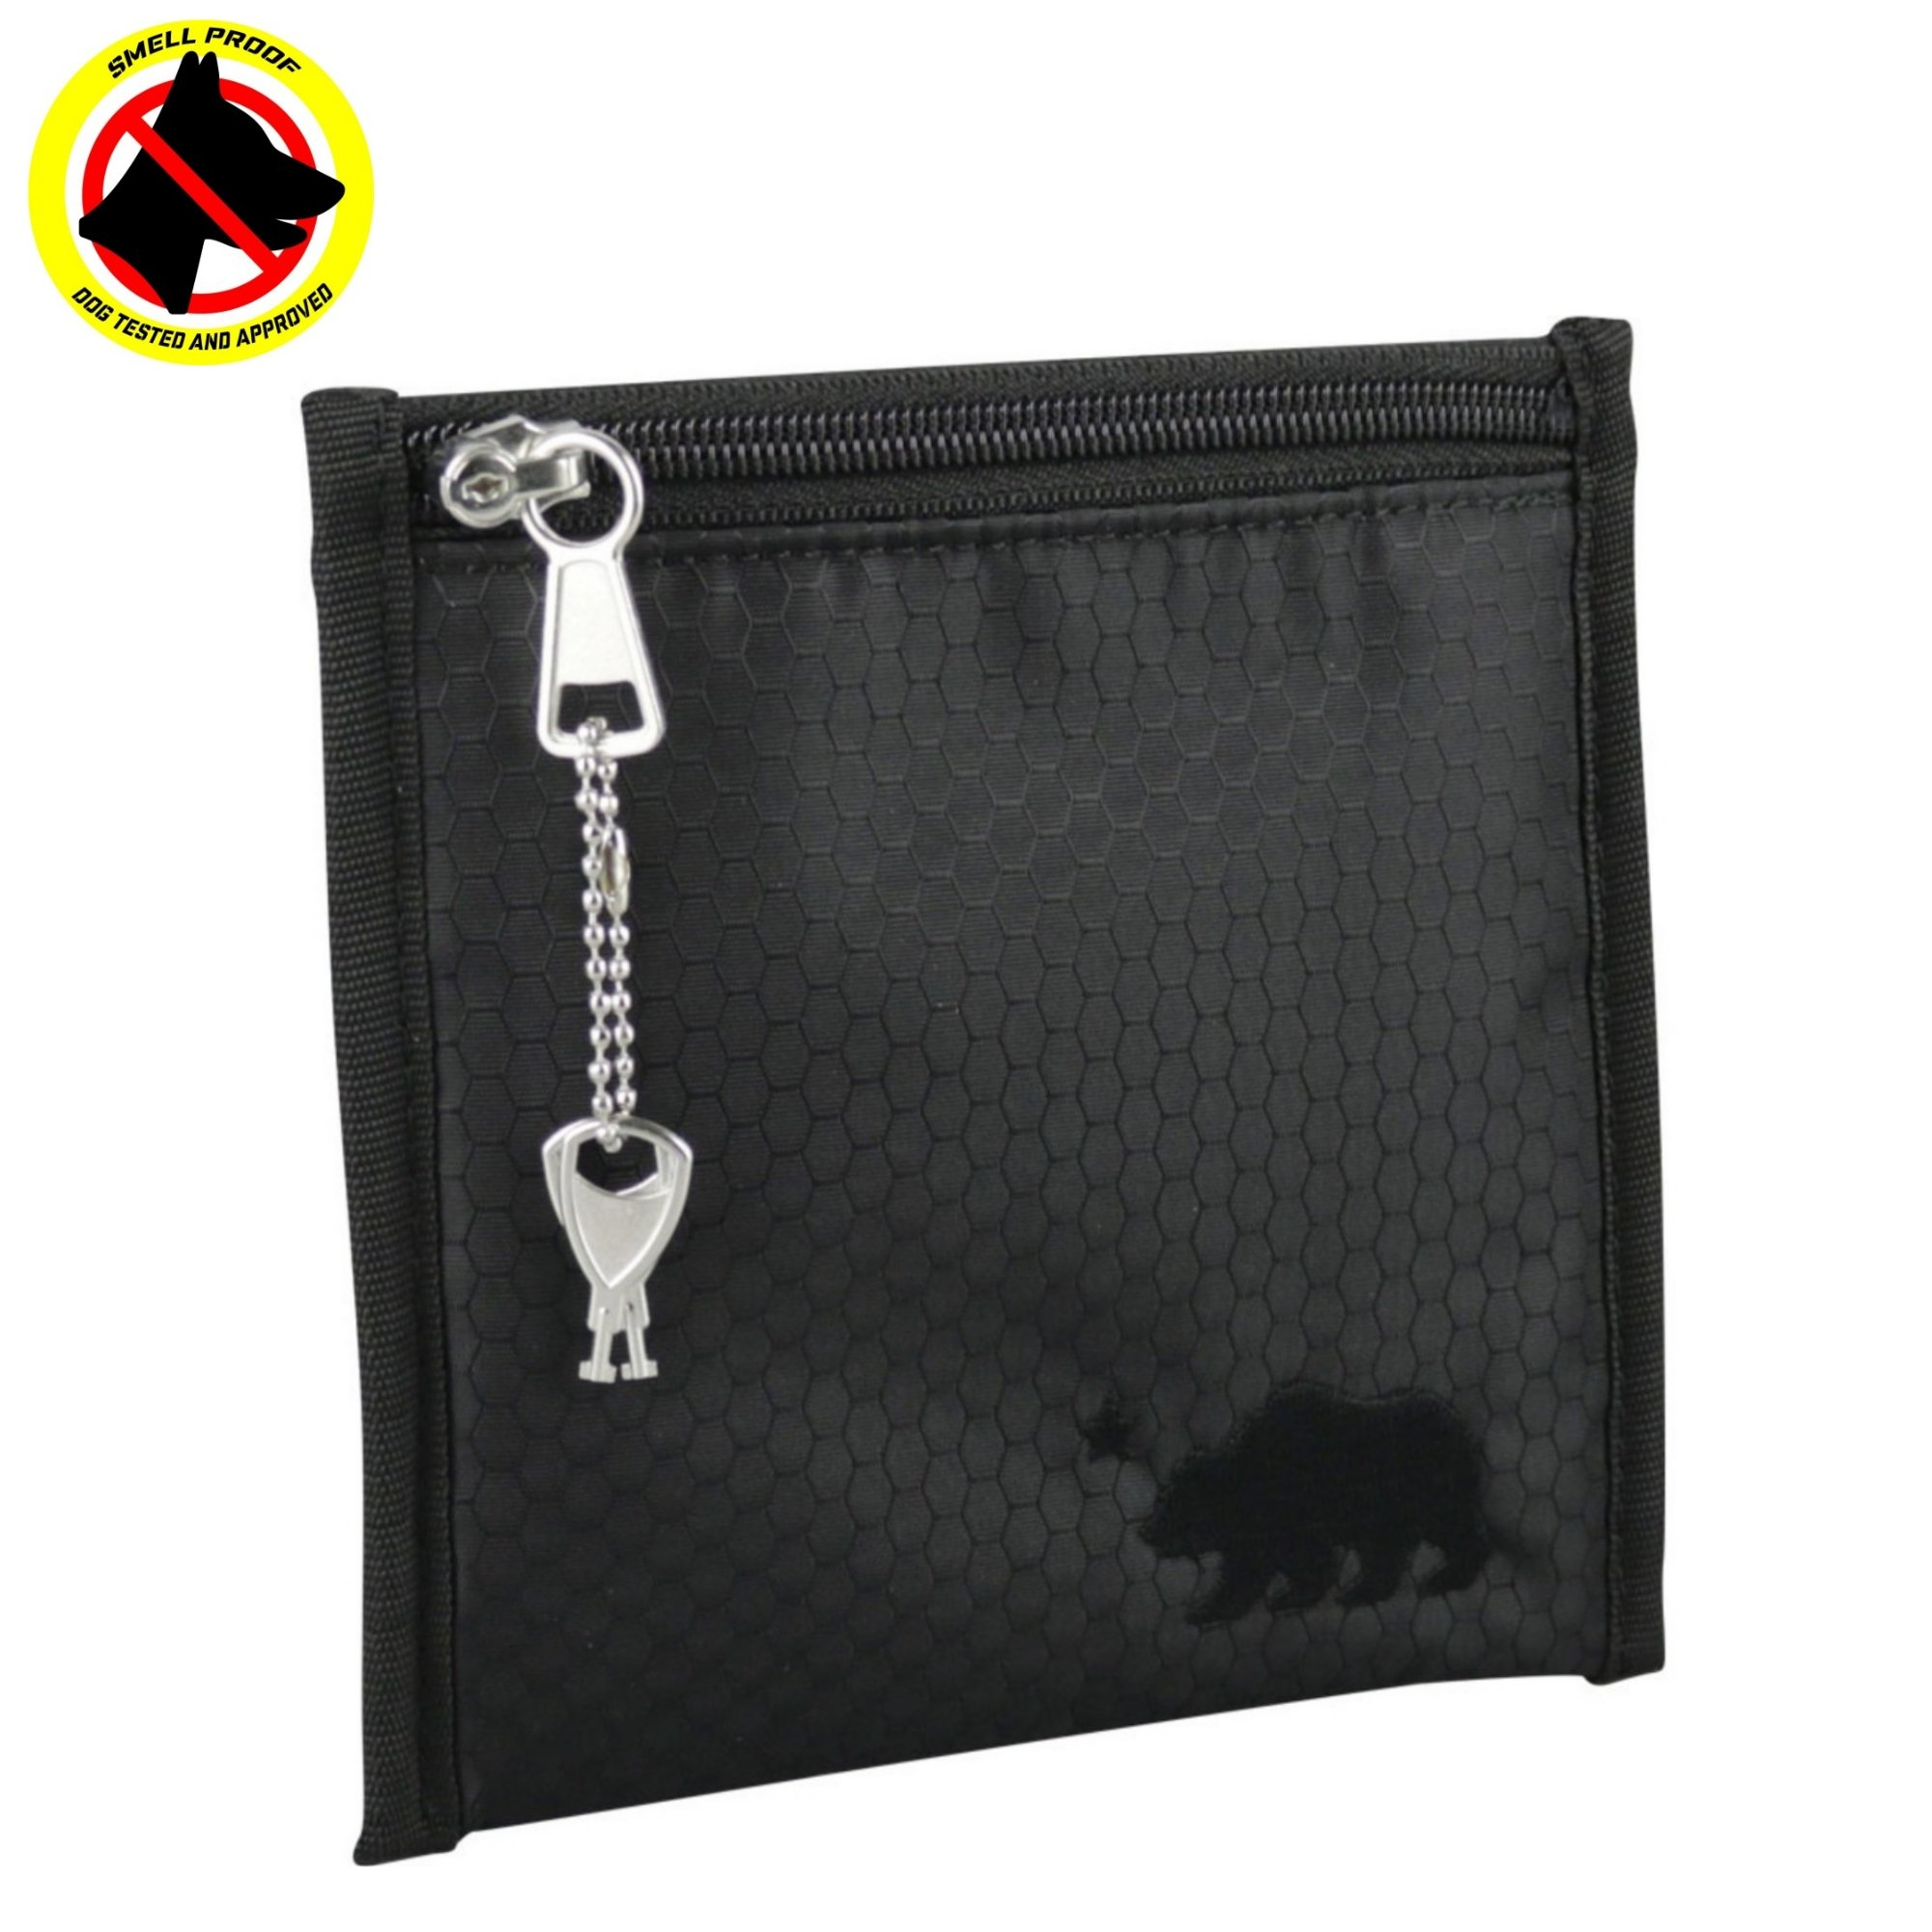 Cali Crusher 100% Smell Proof Pouch w/Locking Key (6''x6'') (Black)